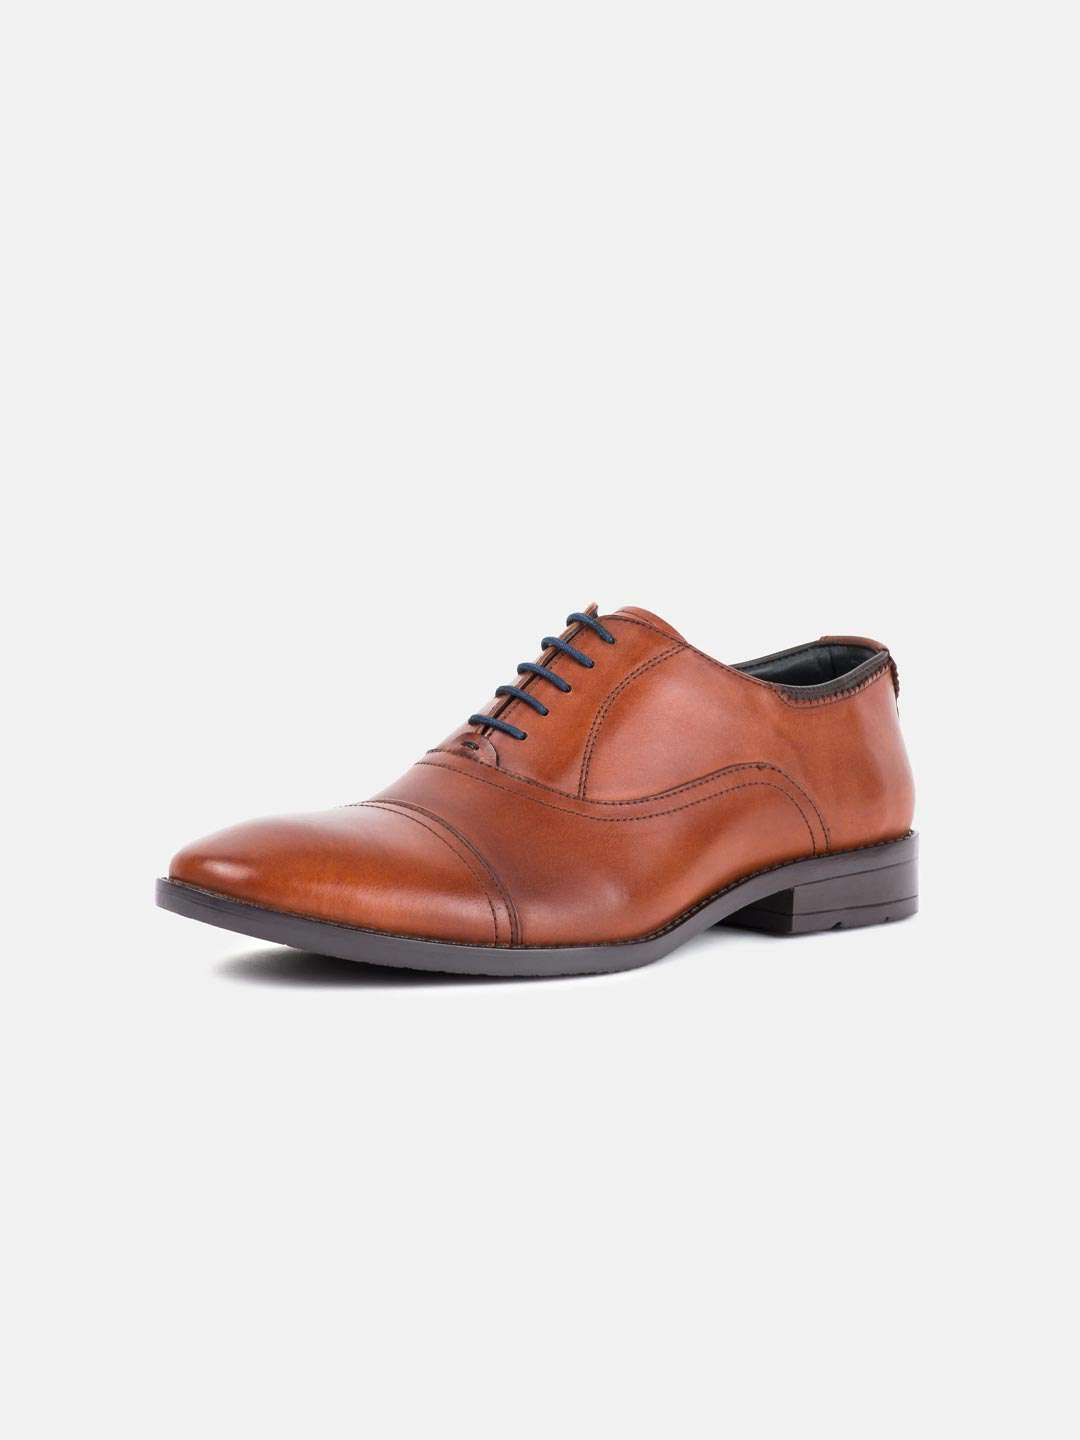 GOODWIN SMITH Westminster Oxford Shoe - Revolver Menswear Bawtry